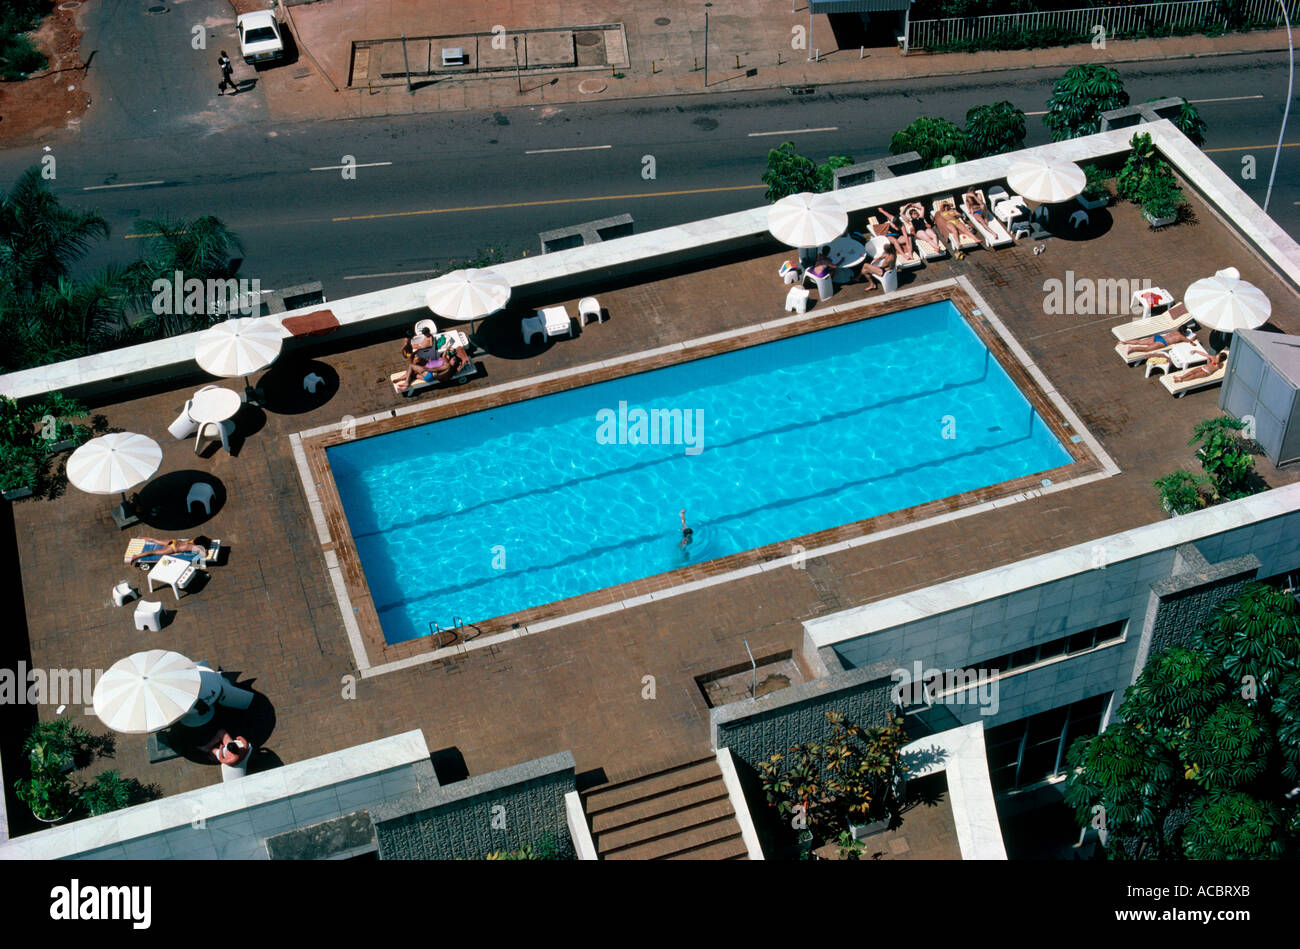 swimmingpool on roof of hotel carlton city of brasilia state of goias brazil editorial use only - Stock Image